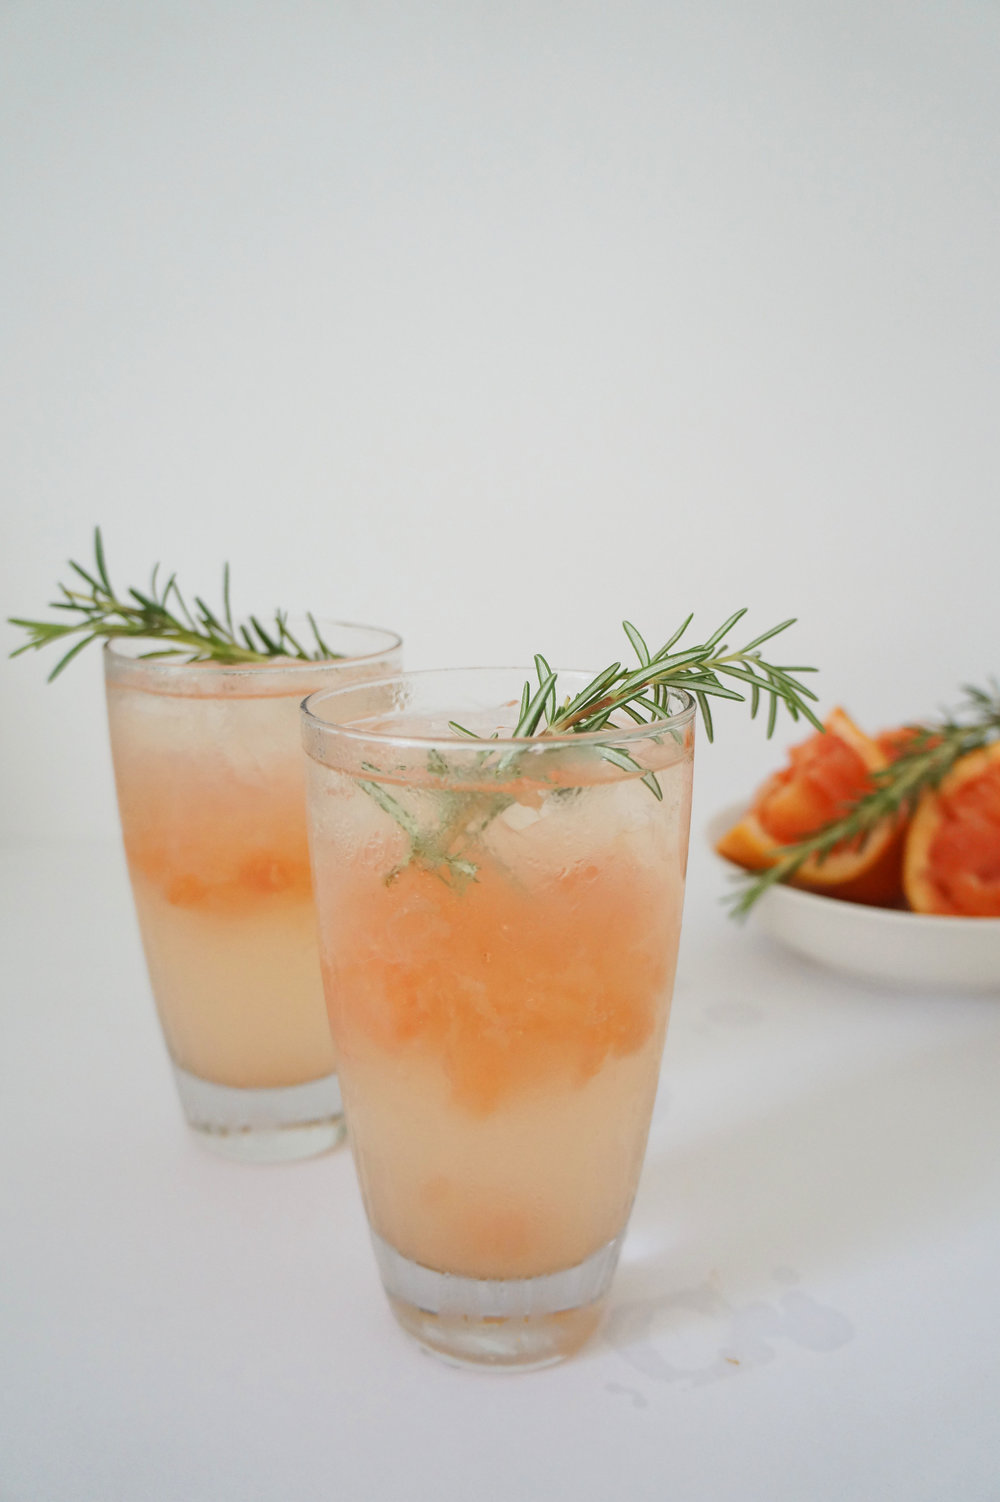 Brunch and Sew Rosemary and Grapefruit Cocktail